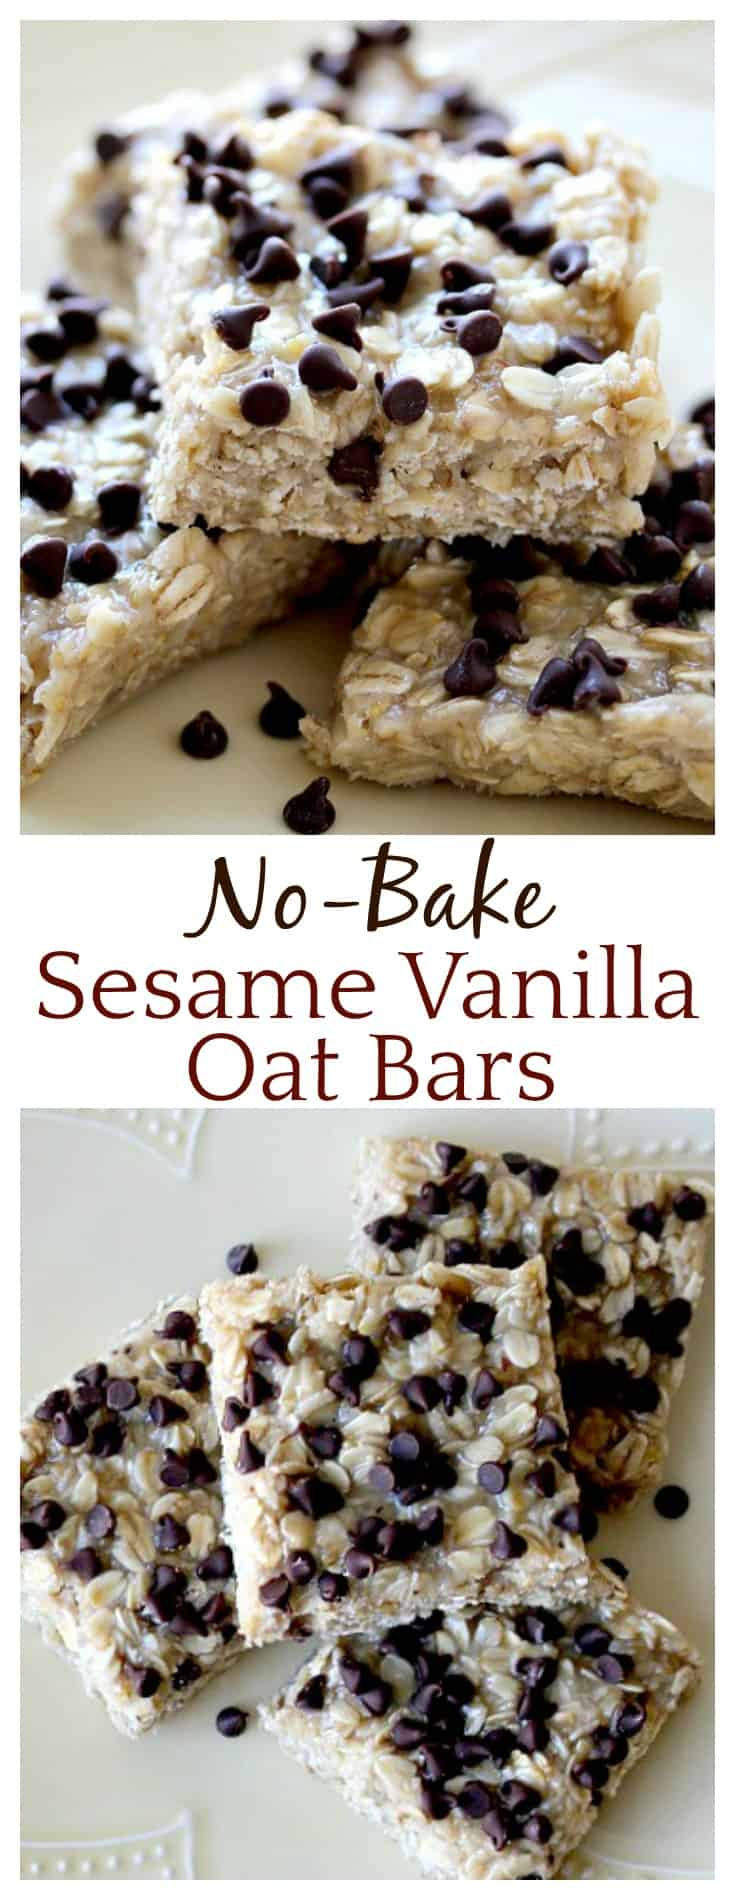 These No Bake Sesame Vanilla Oat Bars really were a nice change from all the peanut butter recipes out there! They are really delicious and super easy to make too!